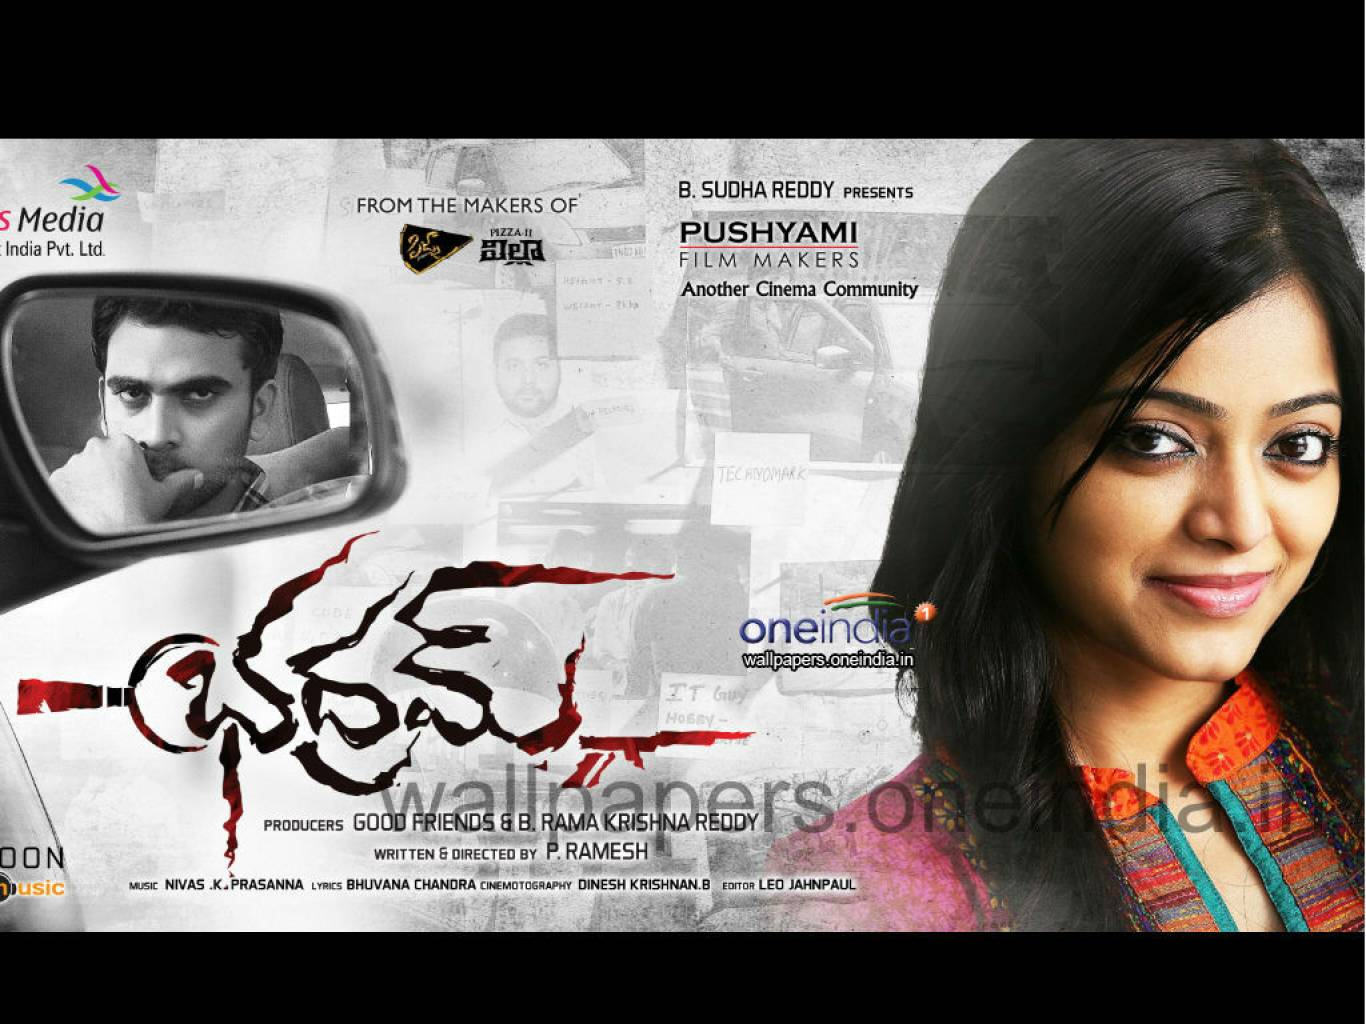 Bhadram Wallpapers